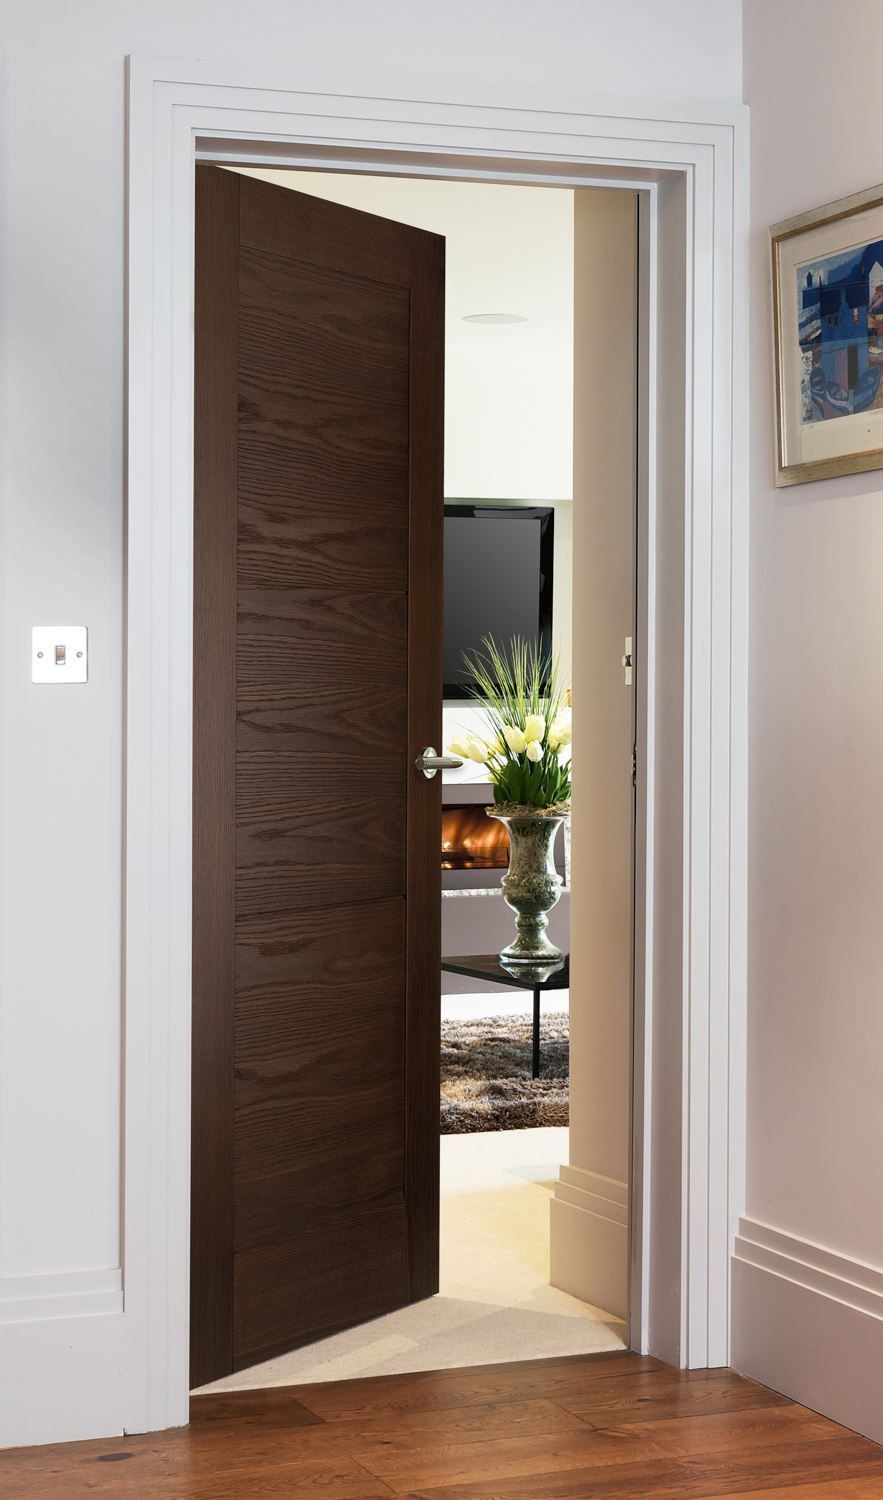 Sienna Smoked Oak Contemporary Style Door For Modern Homes At The Great Price Doors Interior Modern Wooden Doors Interior Doors Interior